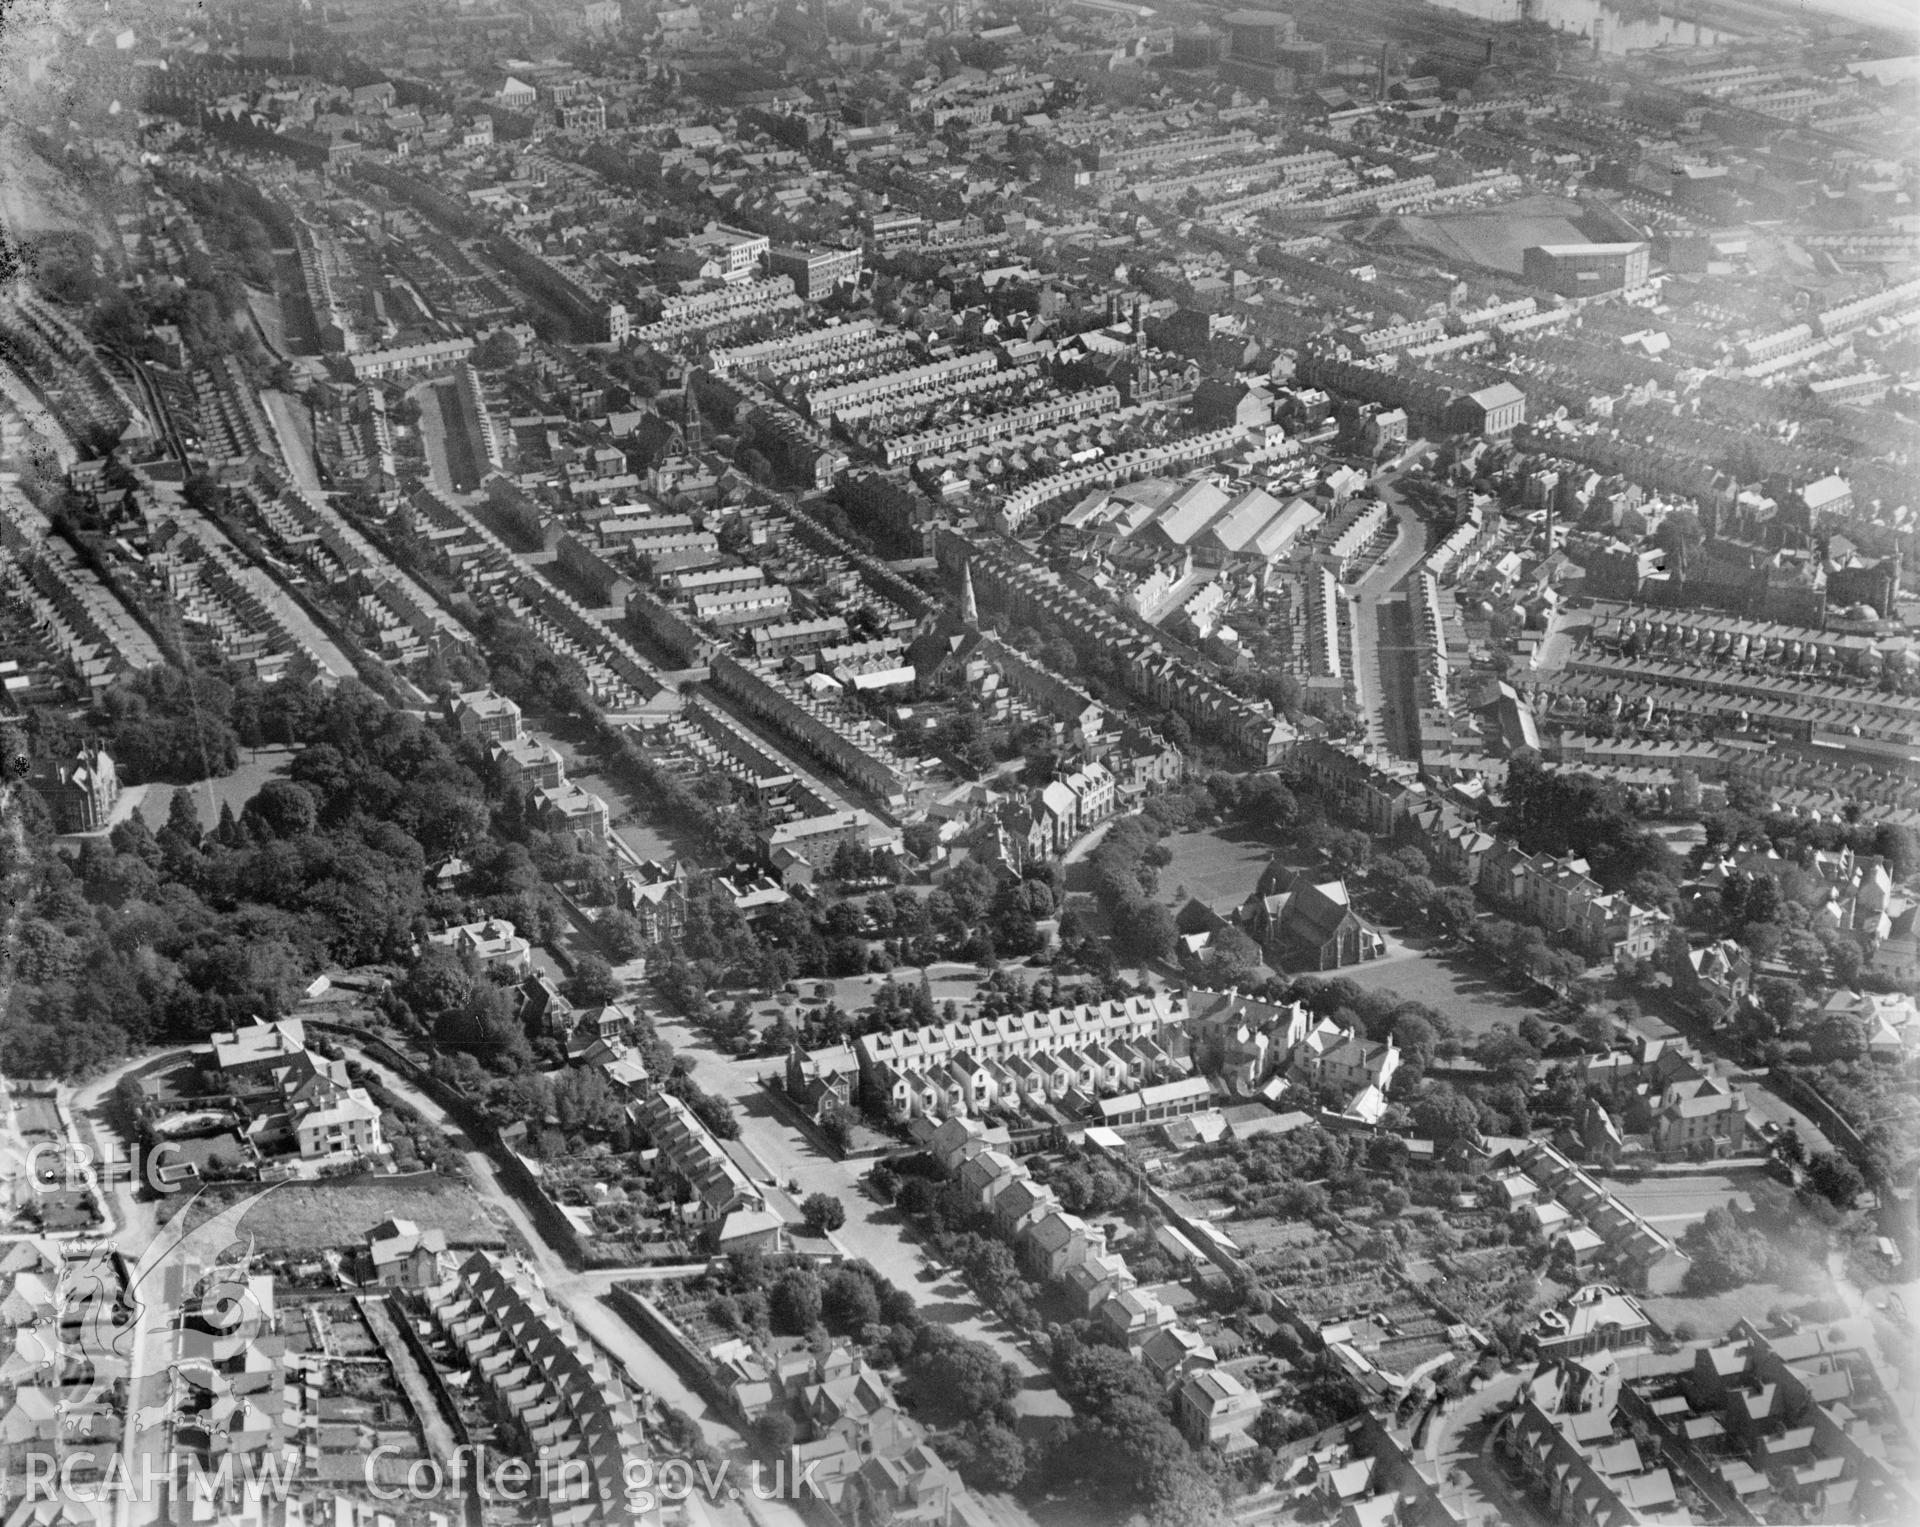 General view of Swansea, residential areas, oblique aerial view. 5?x4? black and white glass plate negative.